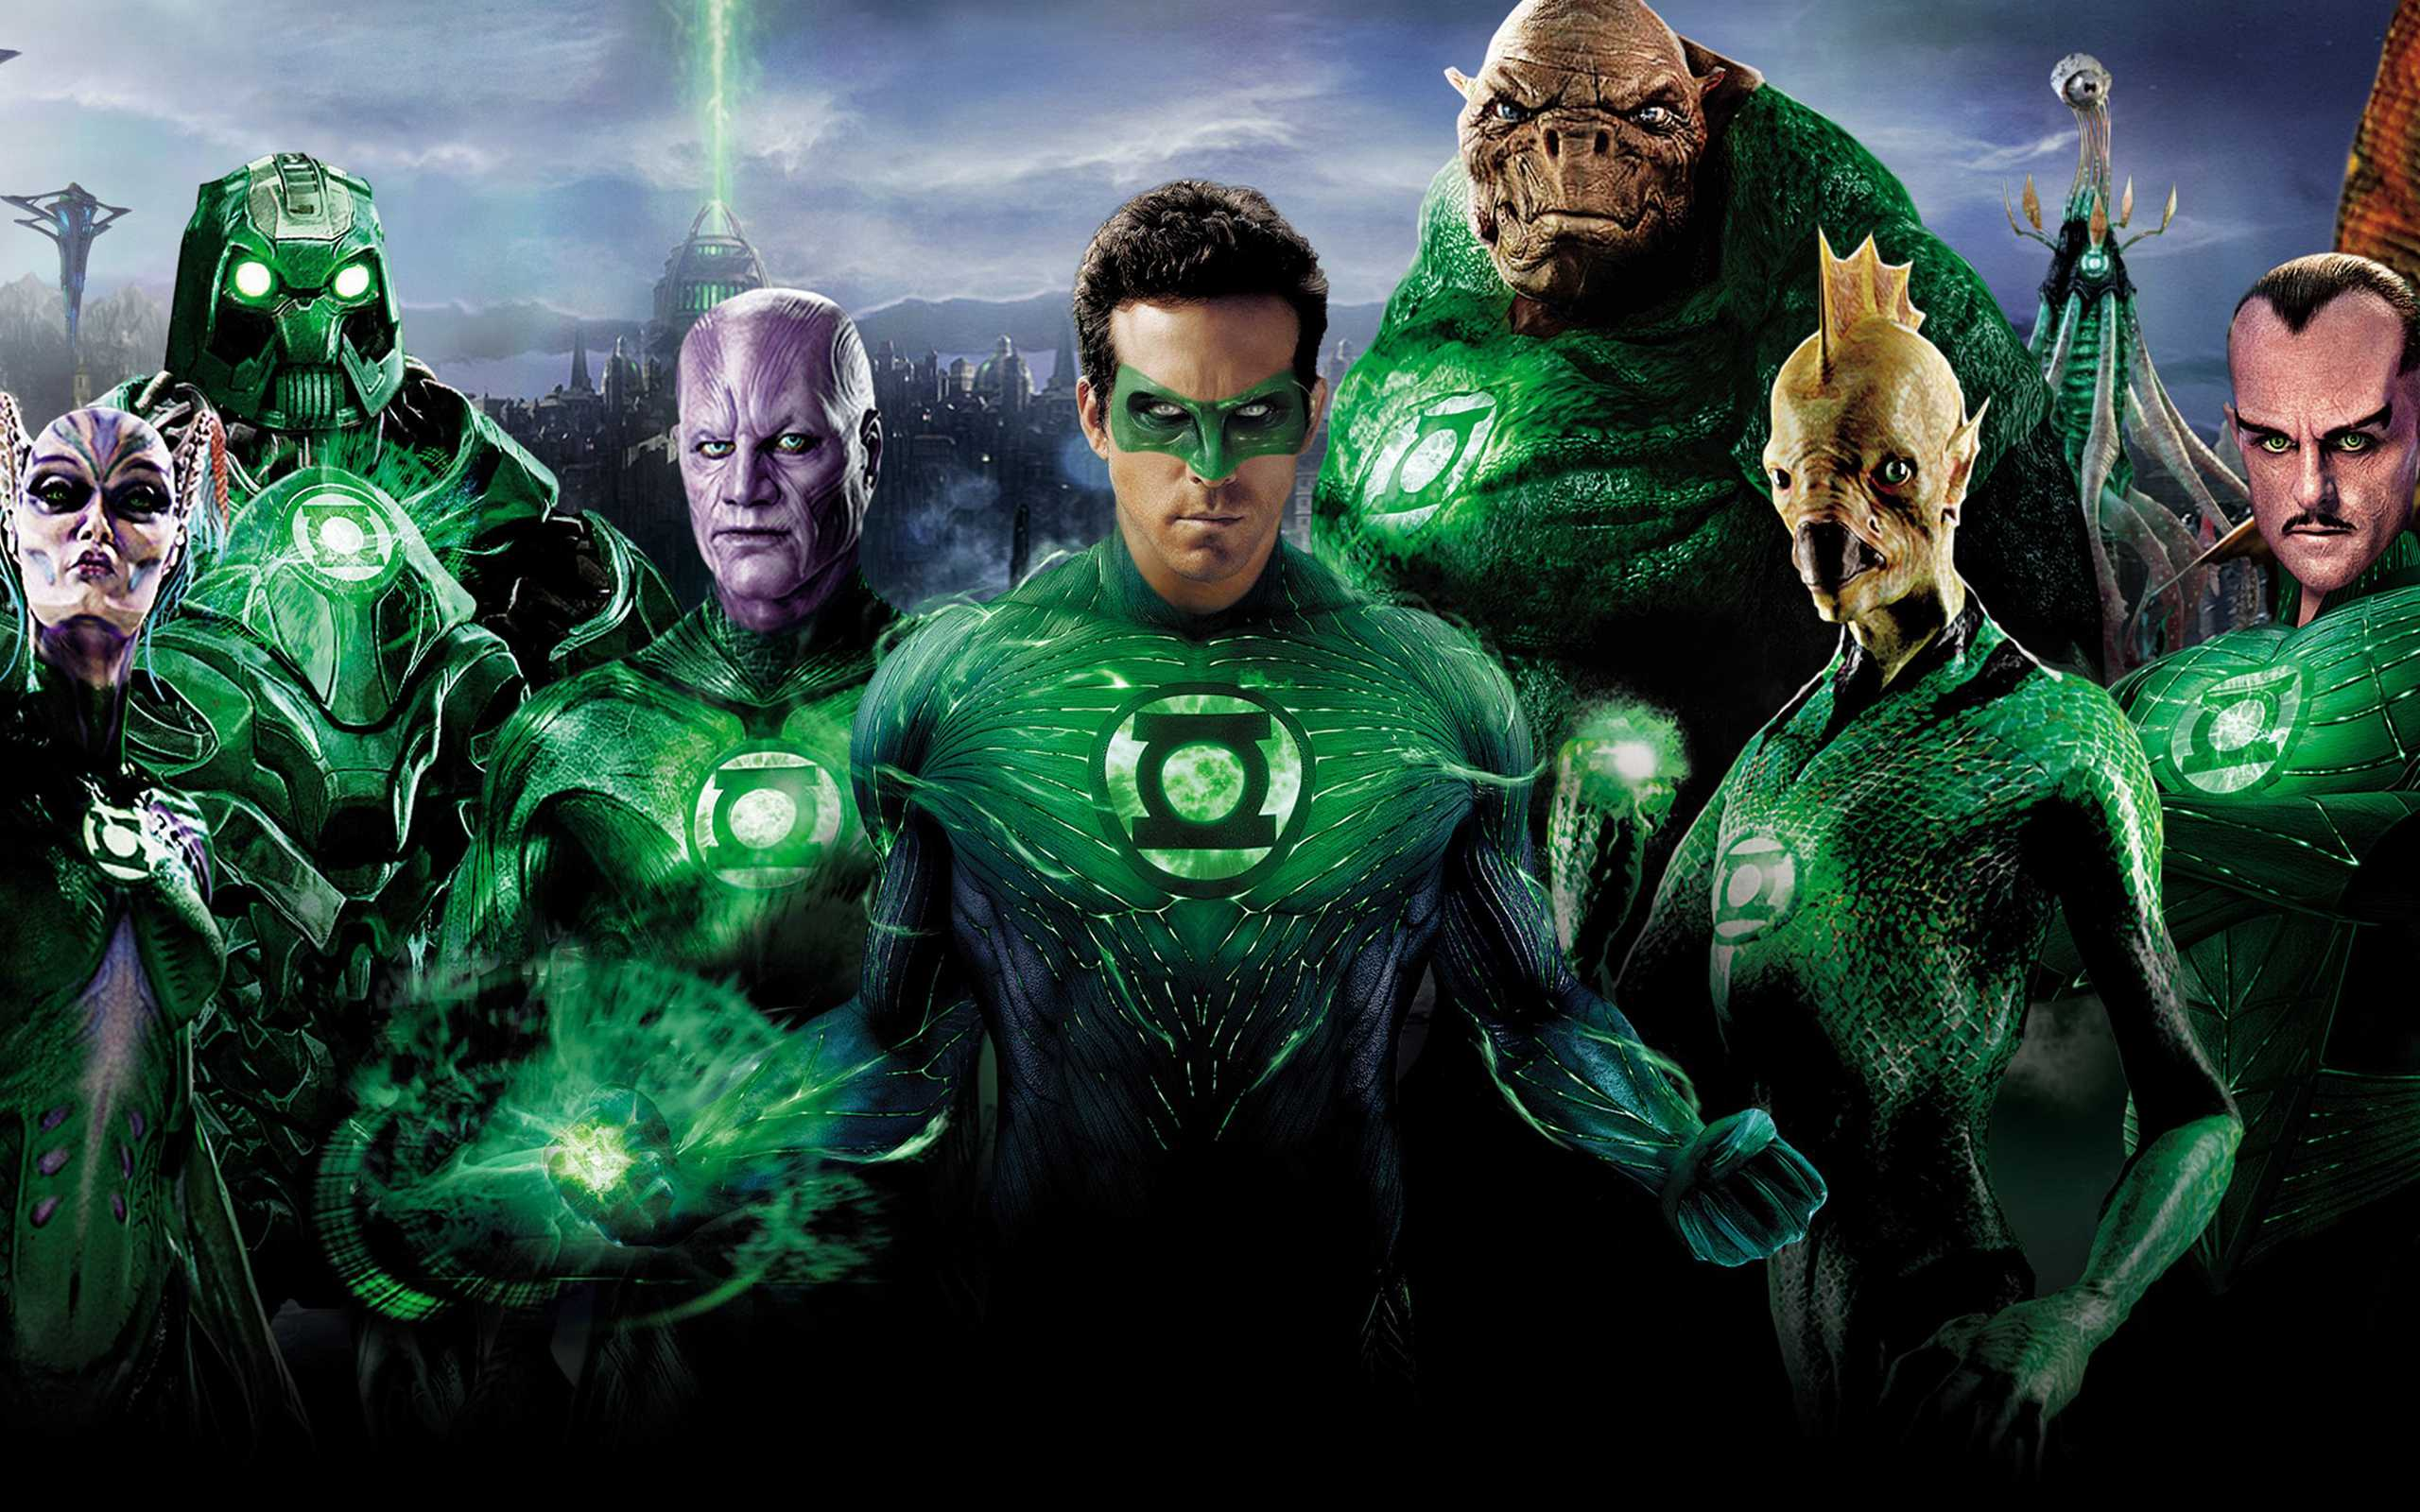 Green Lantern Superheroes